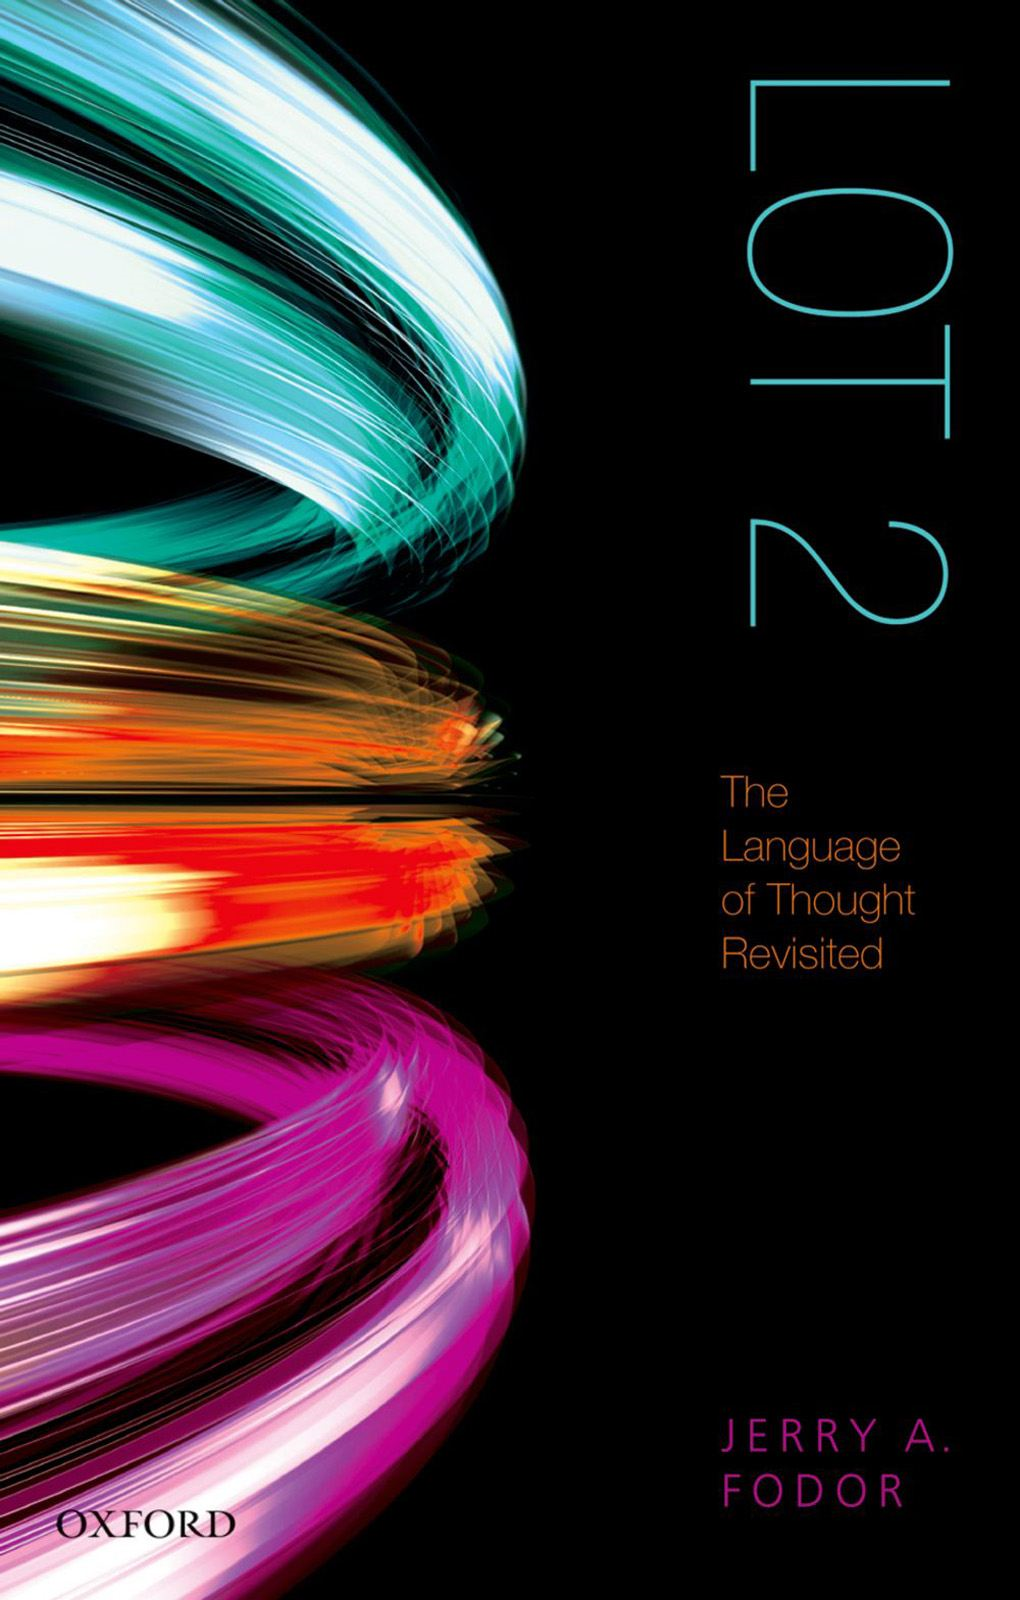 LOT 2 : The Language of Thought Revisited By: Jerry A. Fodor